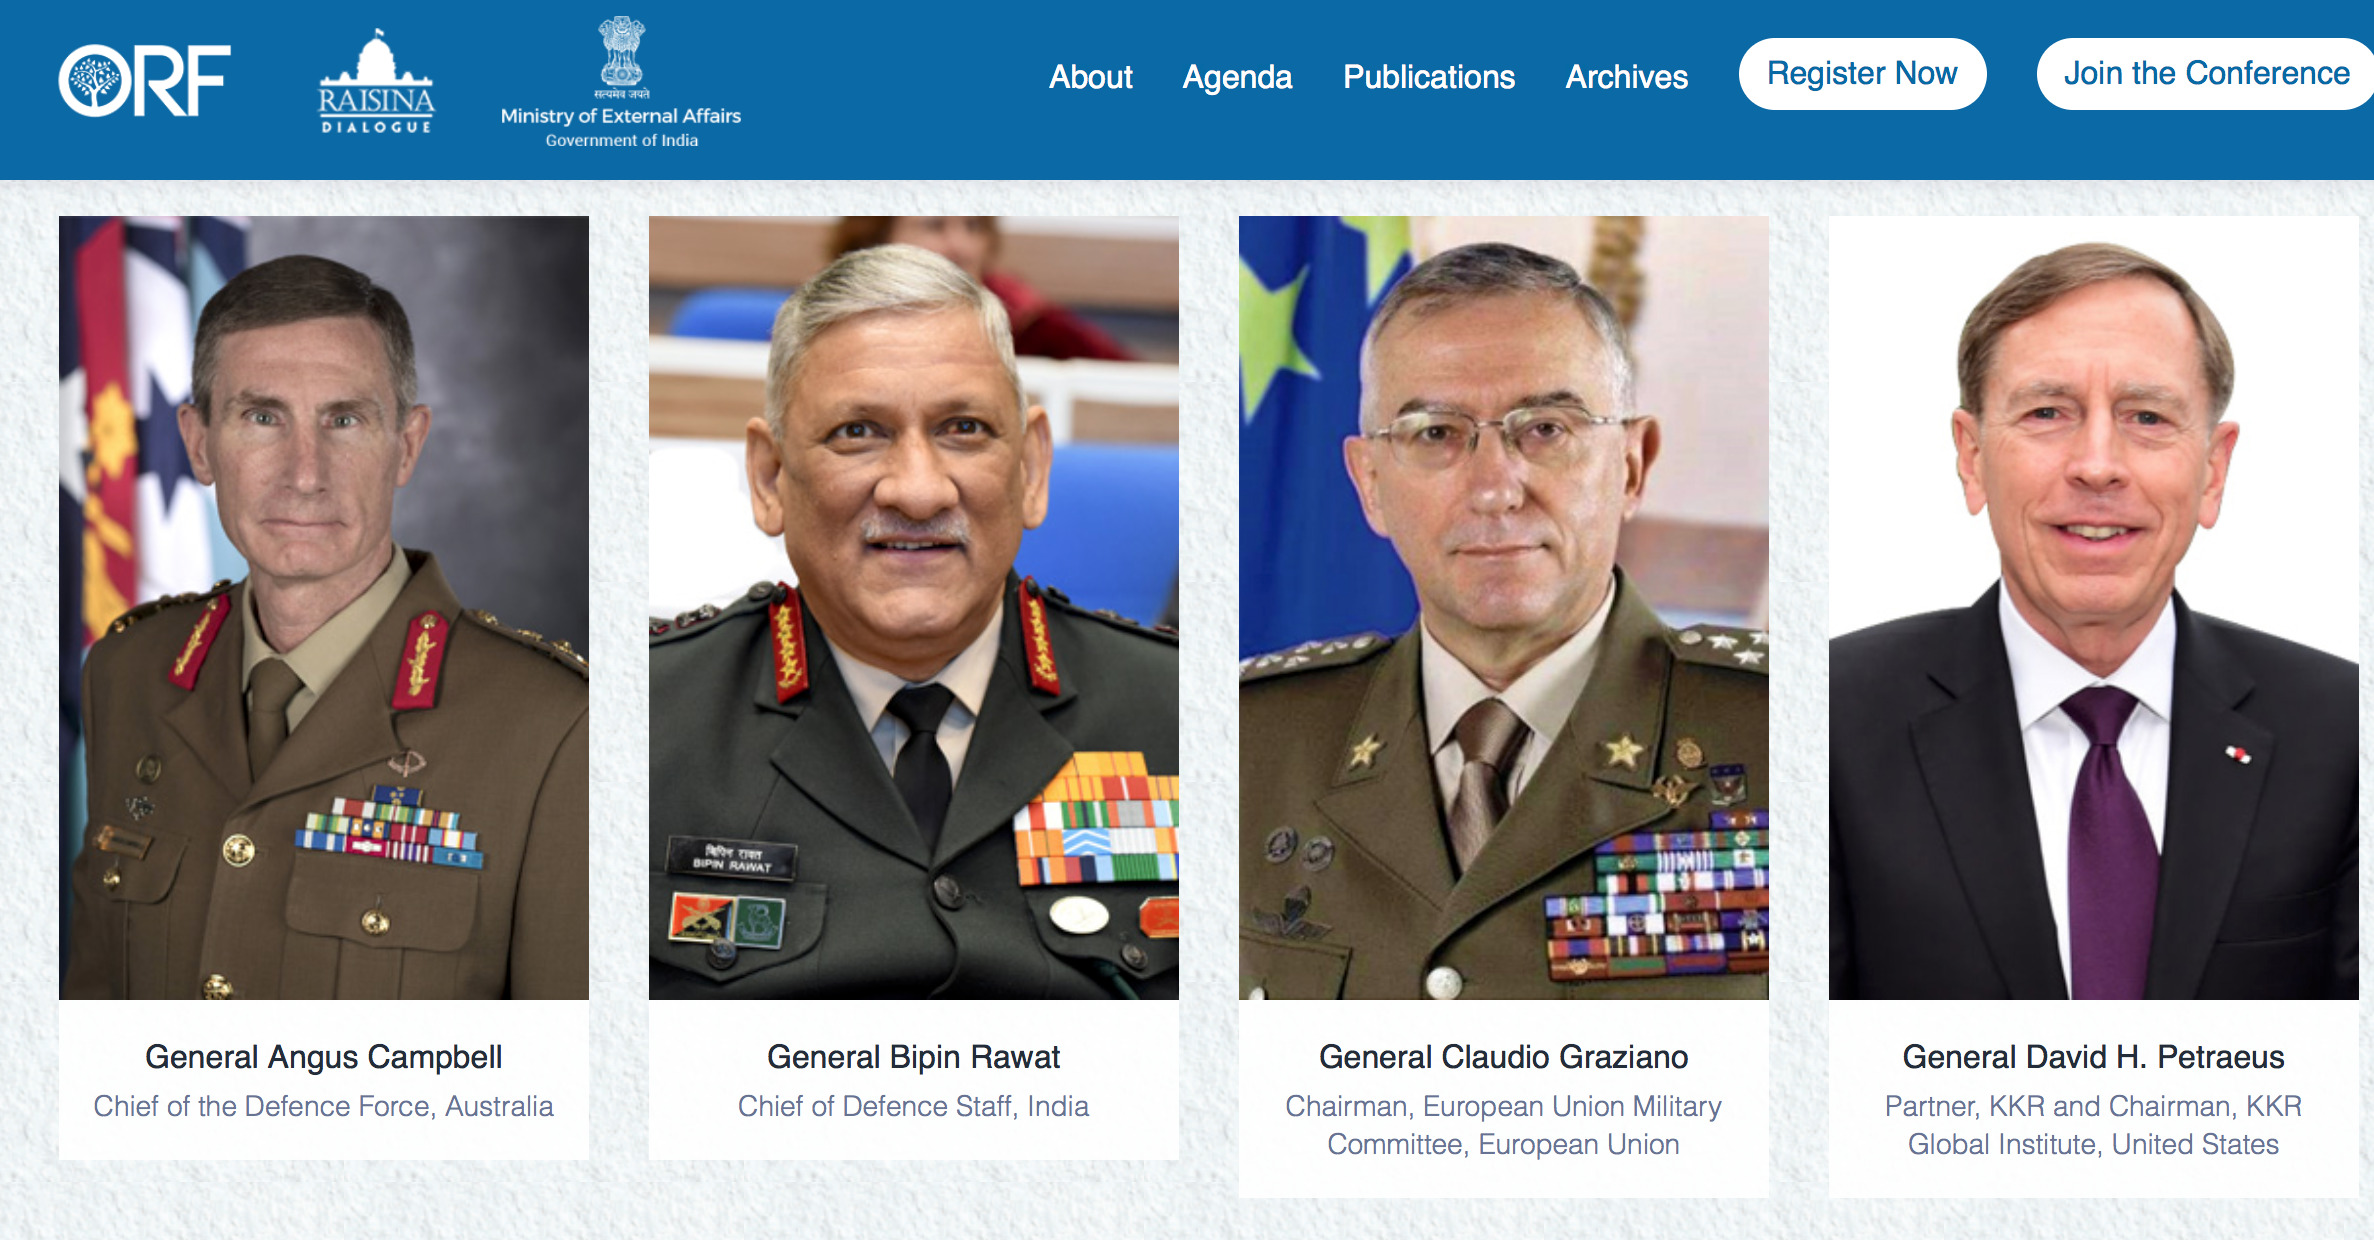 The speakers list of the 2021 Raisina Dialogue included General Angus Cambell, the Australian Defence Force chief, General Bipin Rawat, India's Chief of Defence Staff, General Claudio Graziano, the Chair of the EU Military Committee and former CIA chief David Petreaus, as well as General Koji Yamazaki, Chief of Staff of Japan's defence forces and Nato's Jens Stoltenberg.